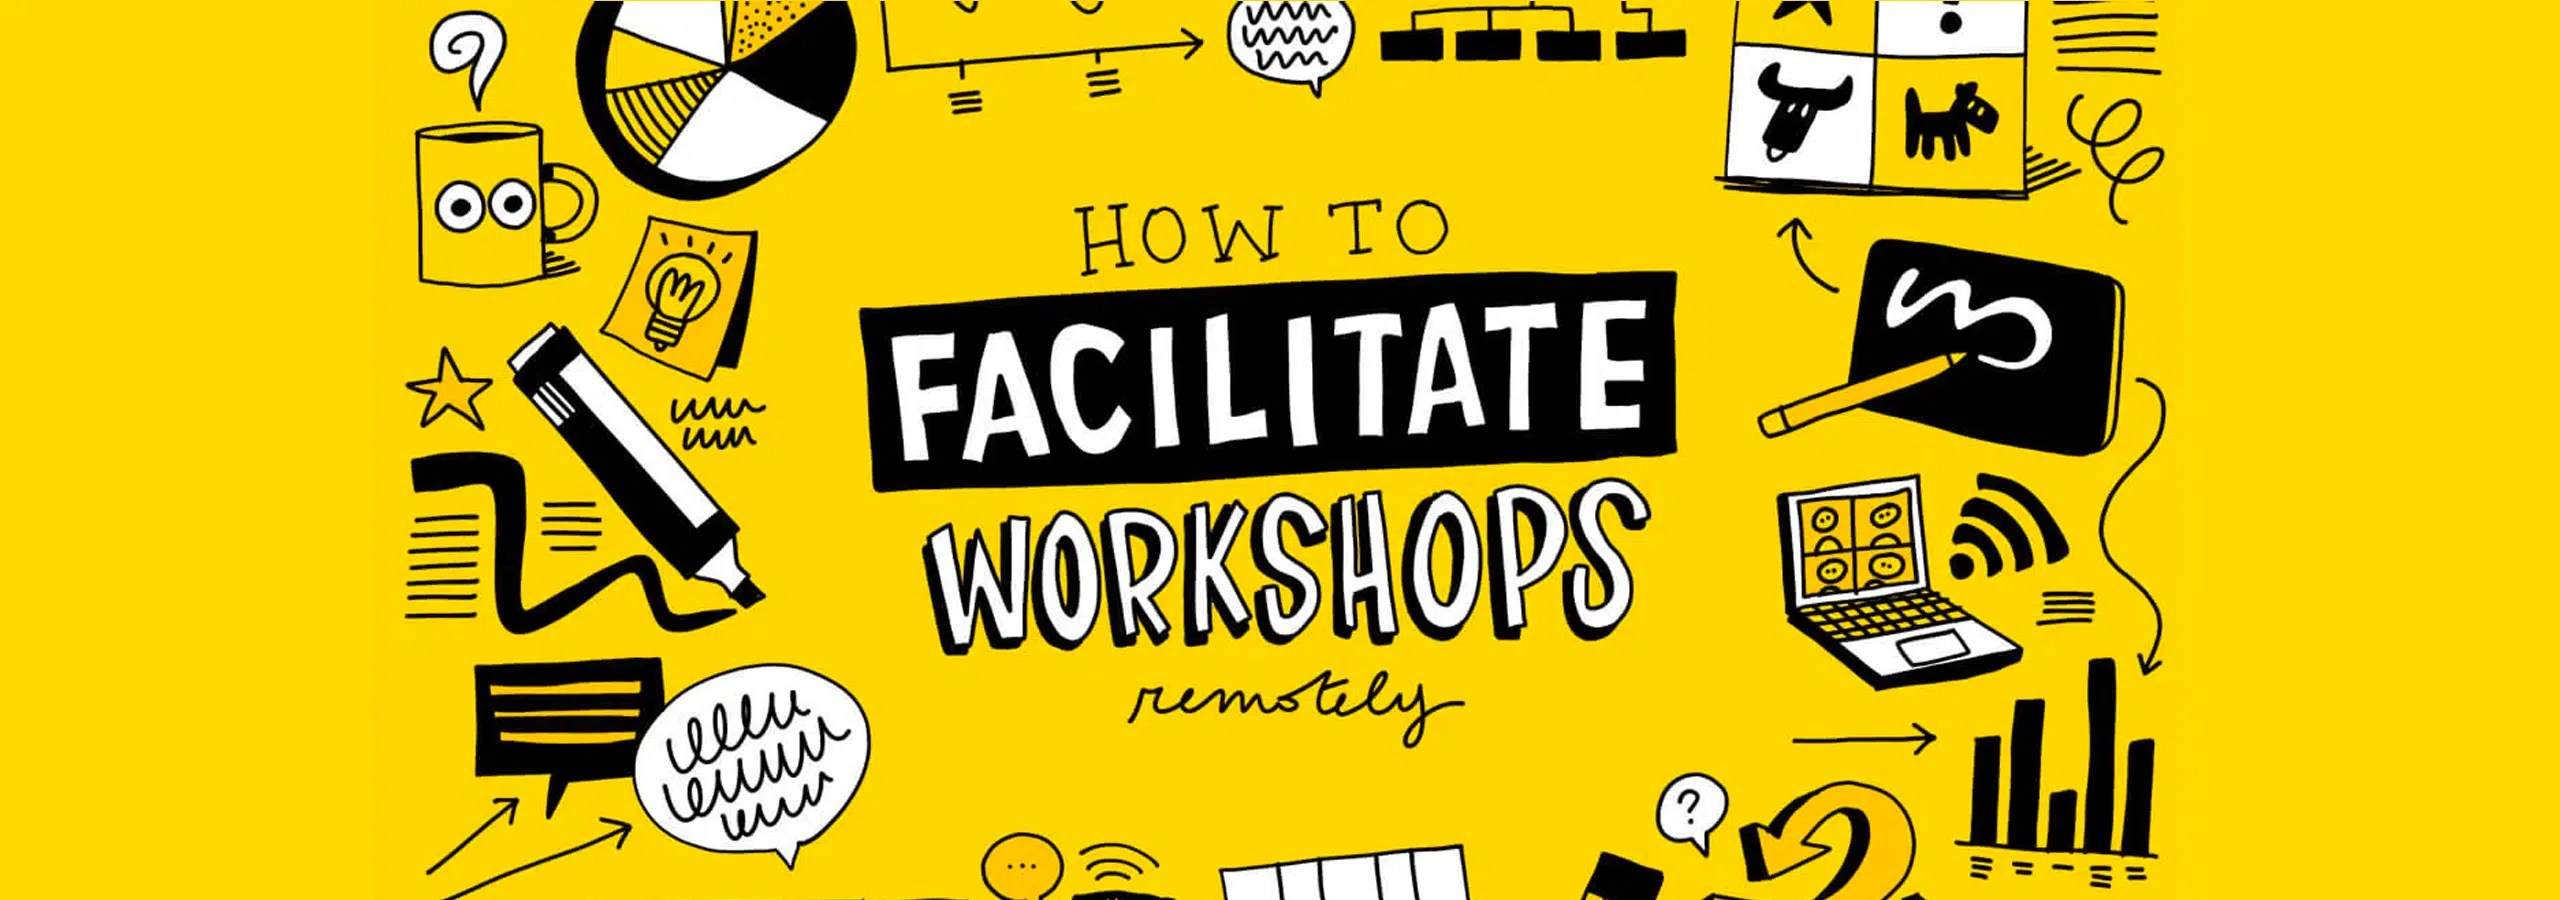 How to facilitate workshops remotely